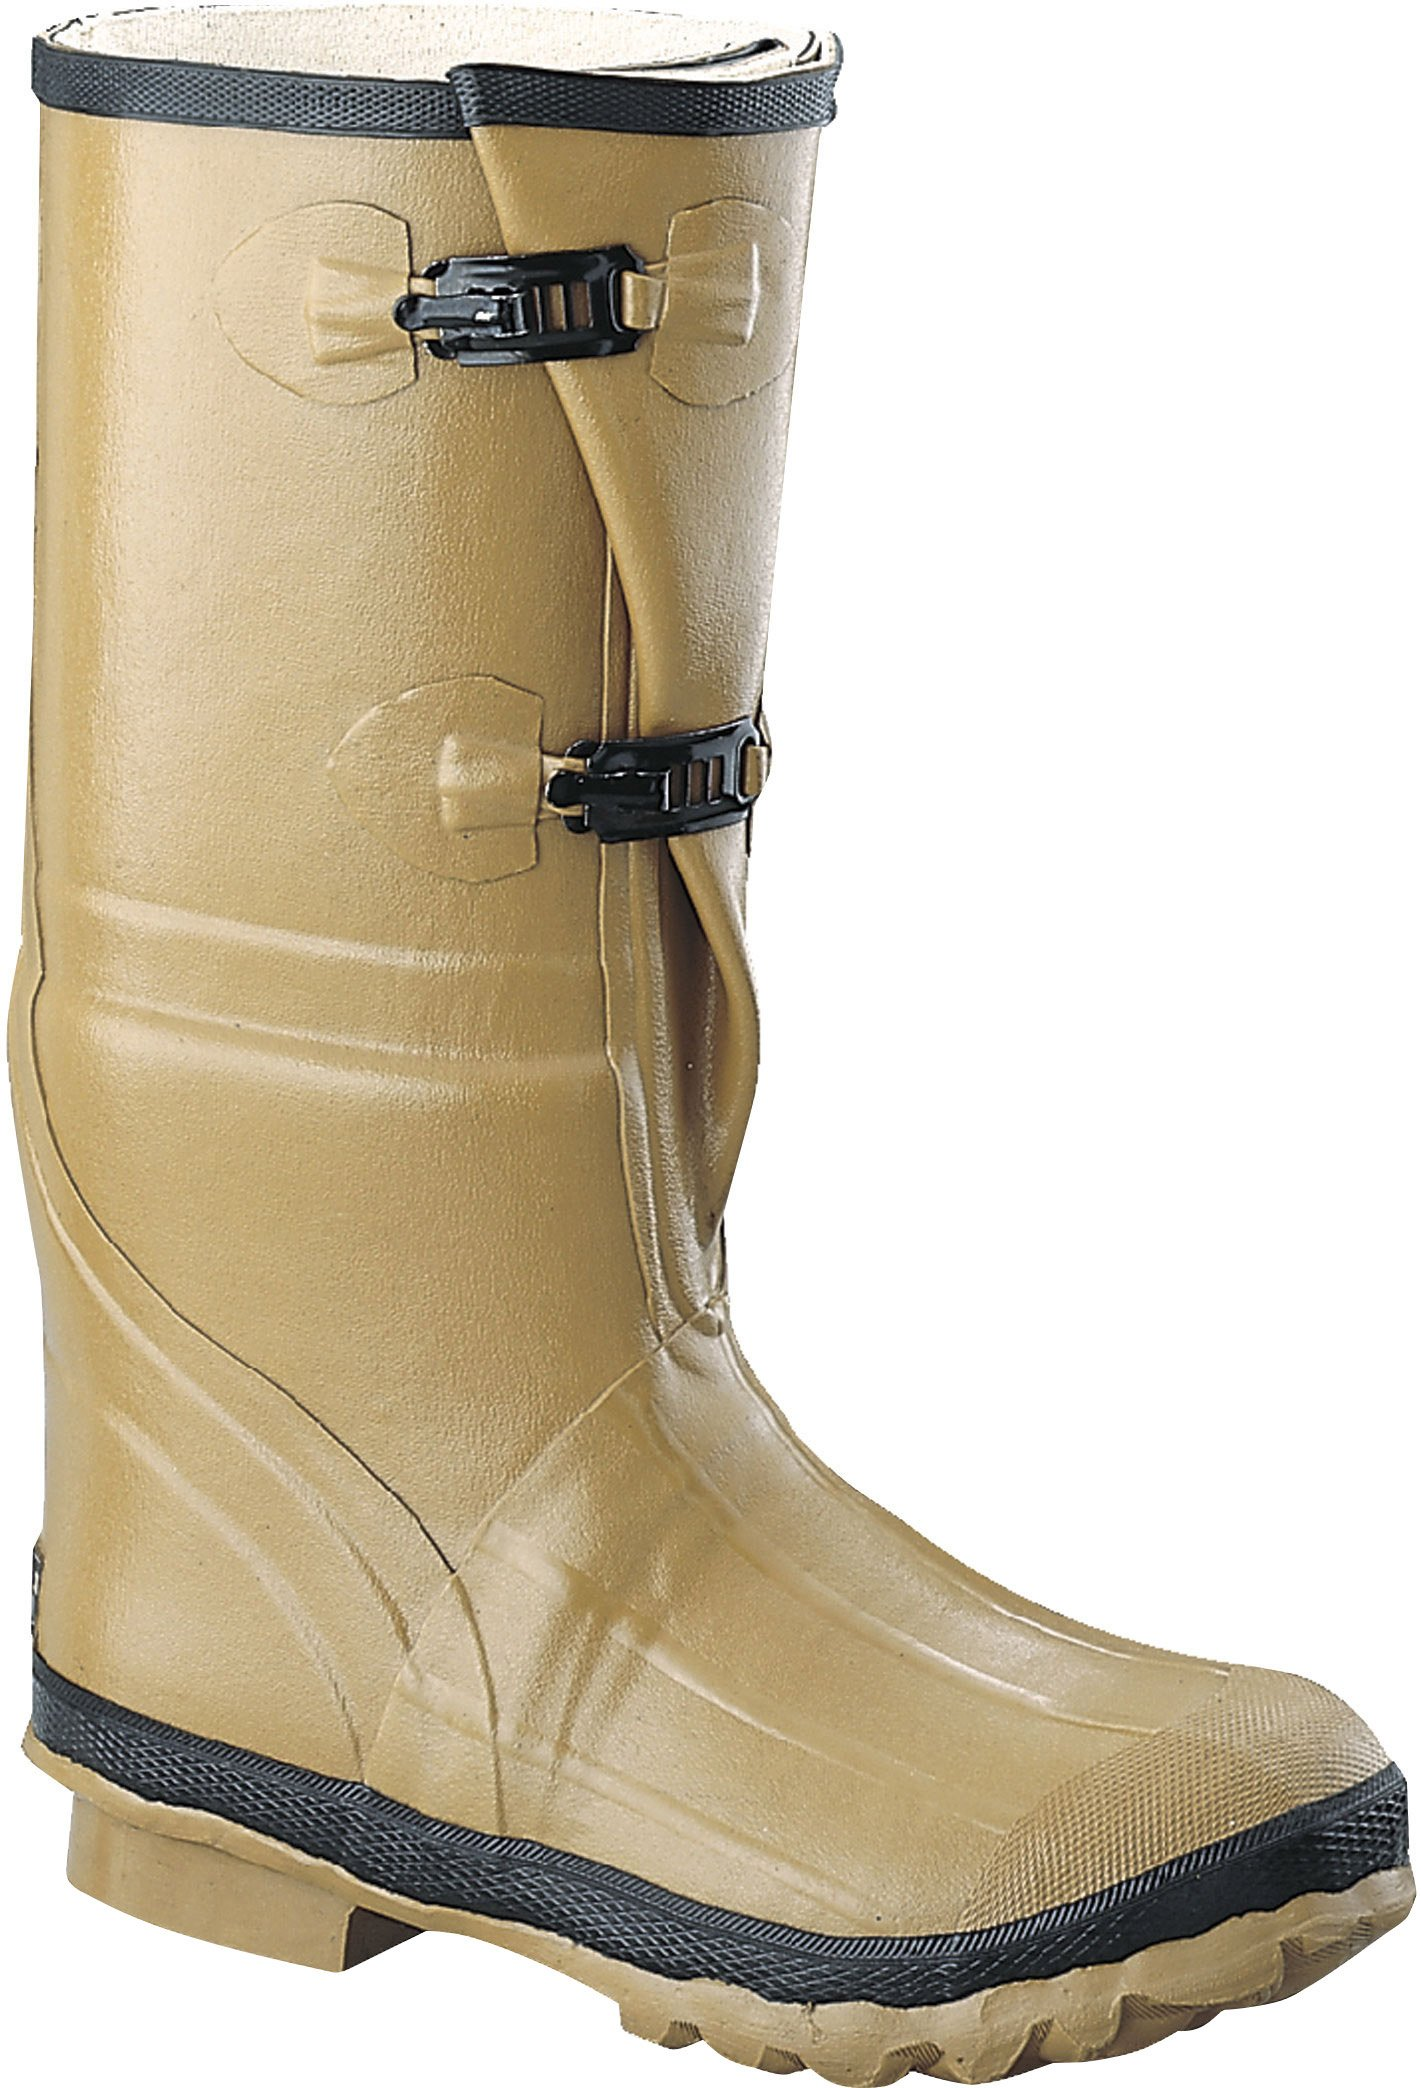 Ranger 16'' Heavy Duty Men's Rubber Insulated Work Boots, Marsh Brown (78590)